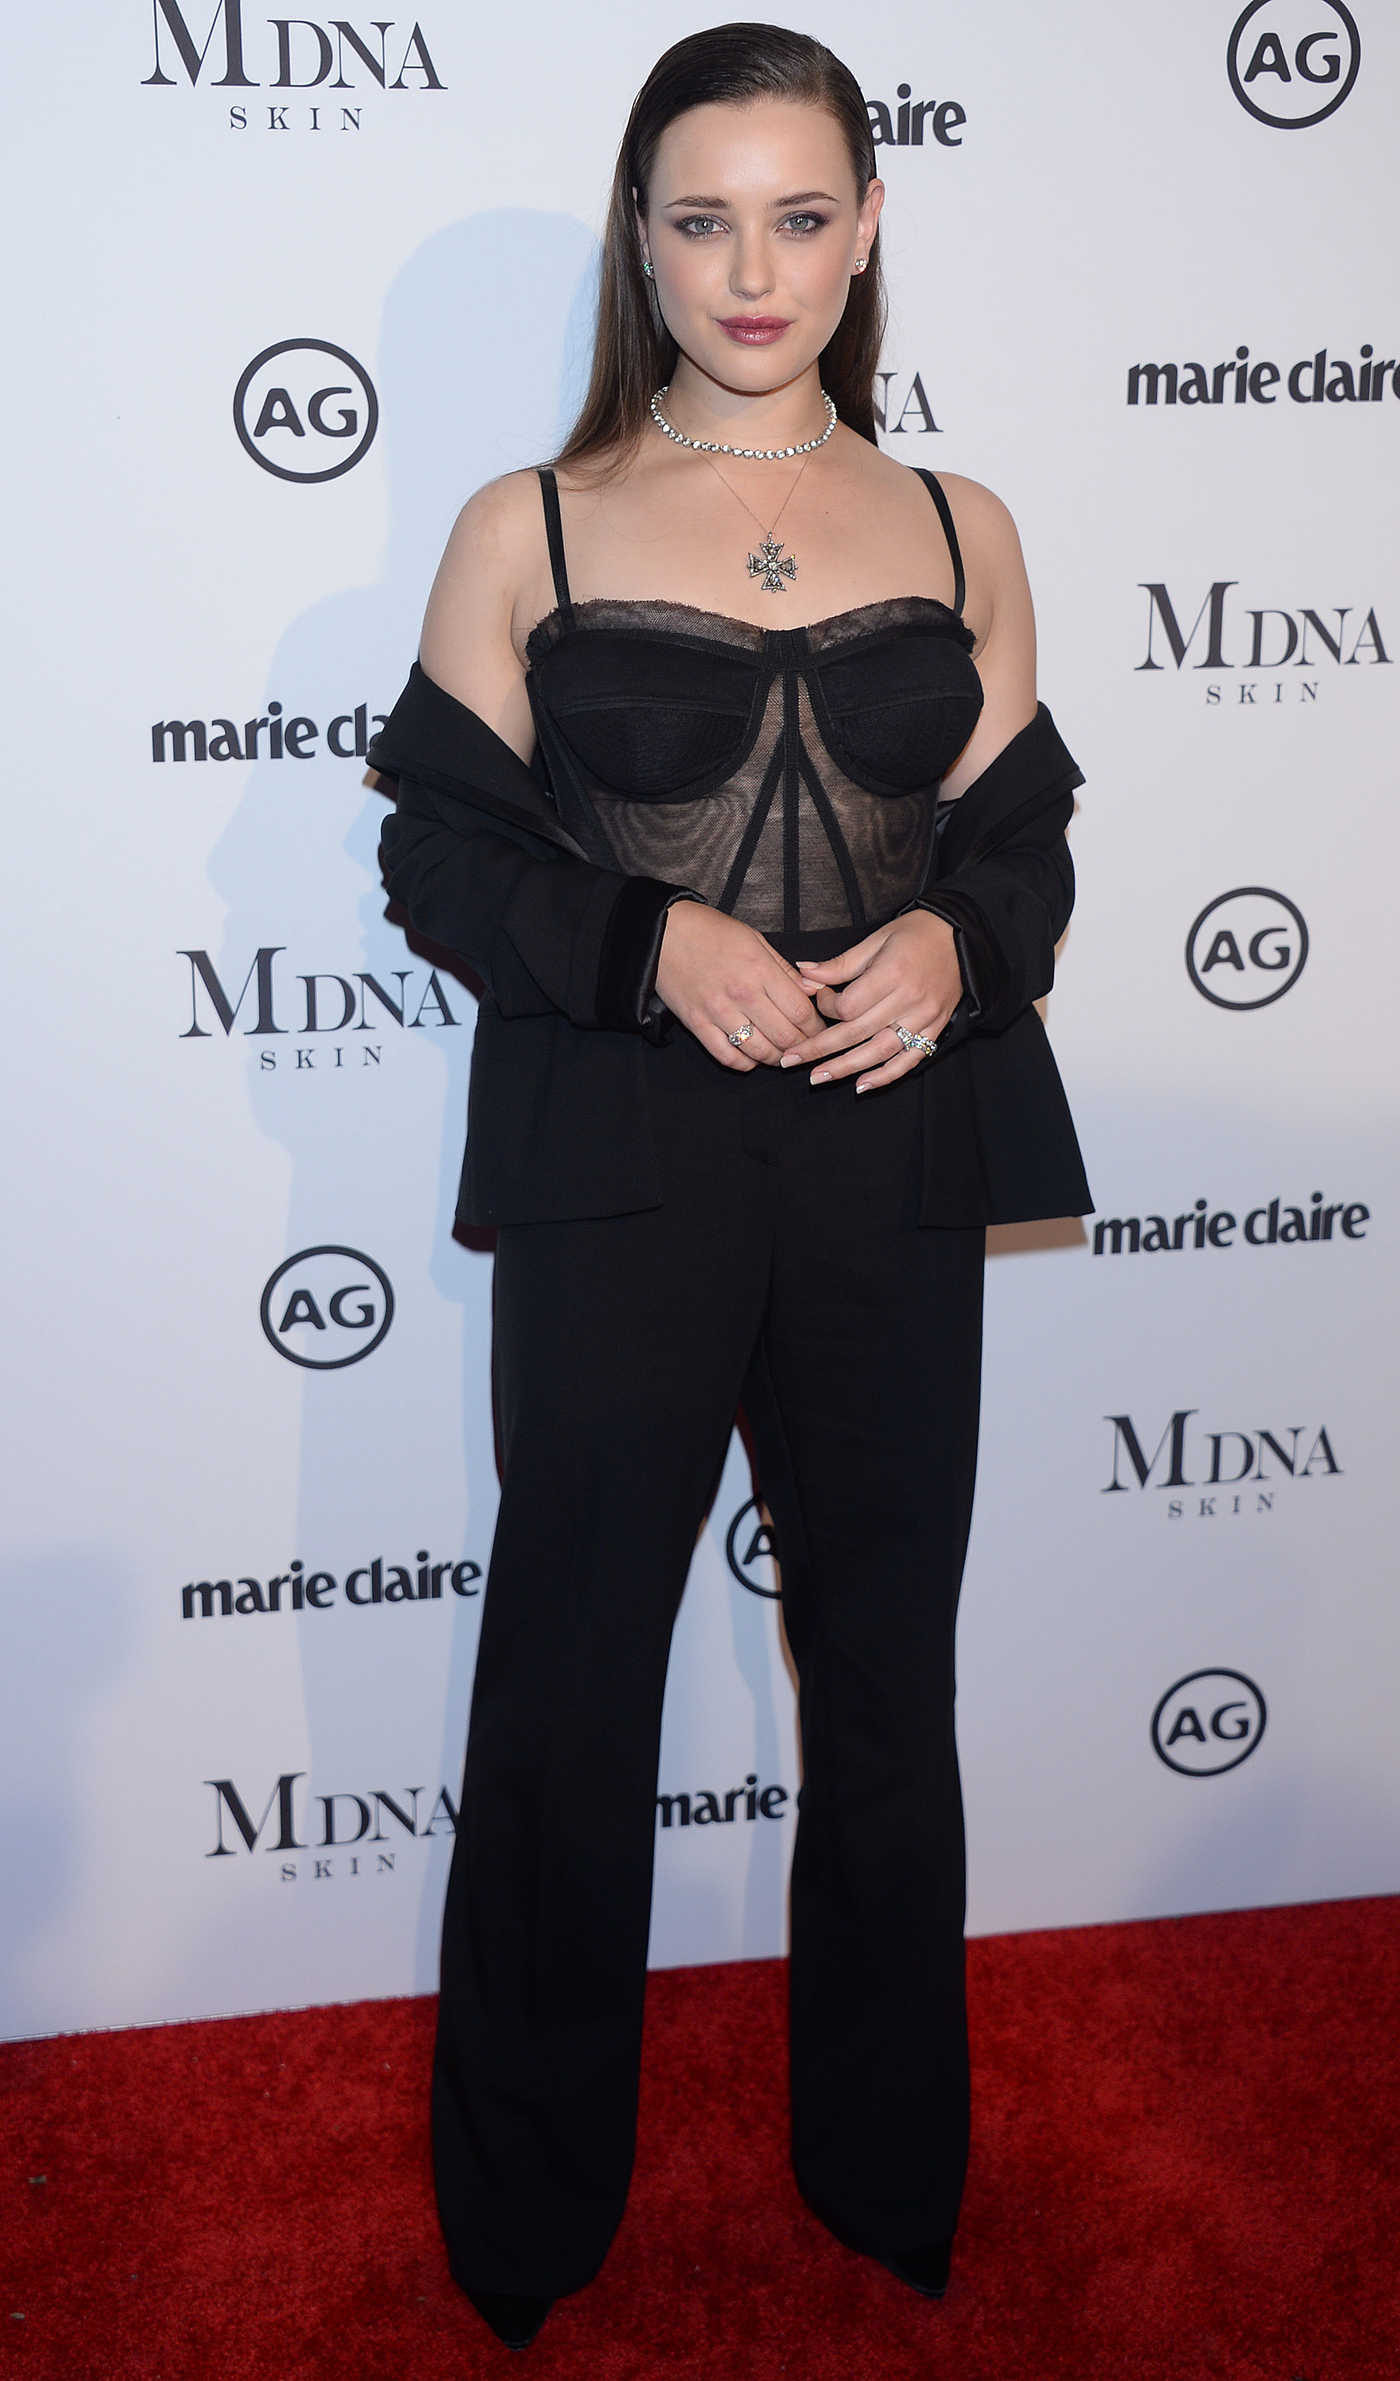 Katherine Langford at the Marie Claire Image Makers Awards in Los Angeles 01/11/2018